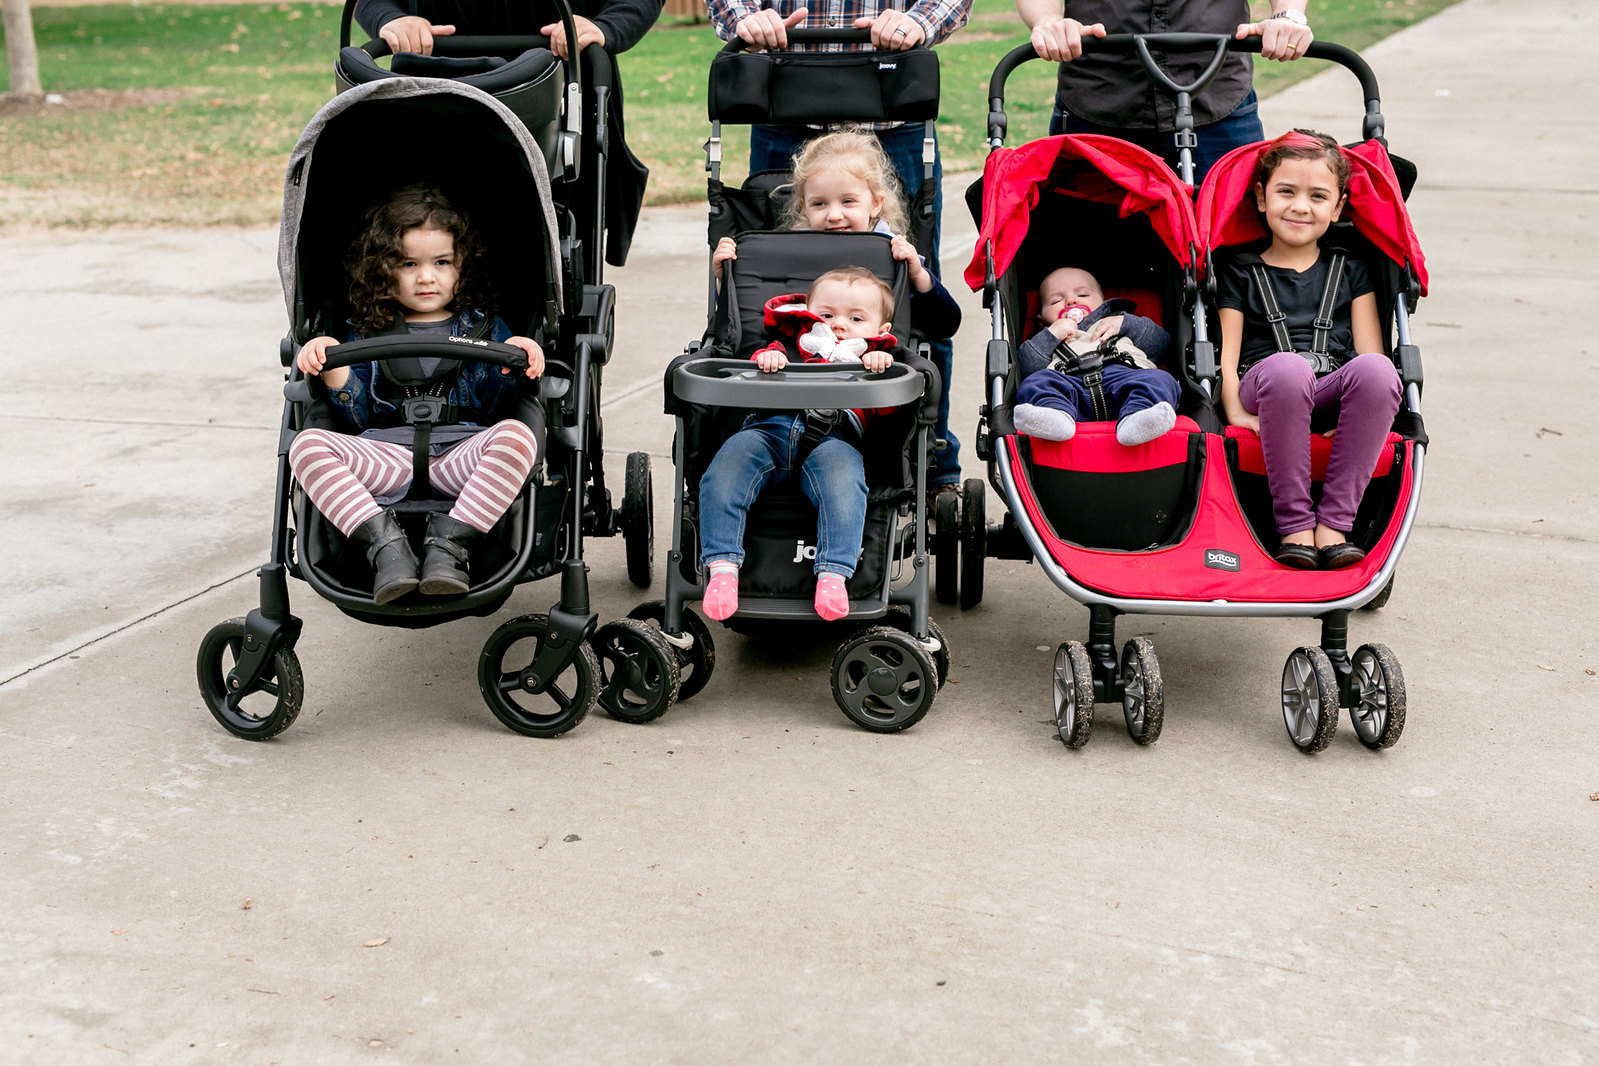 How to buy double jogging stroller for infant and toddler 2020?